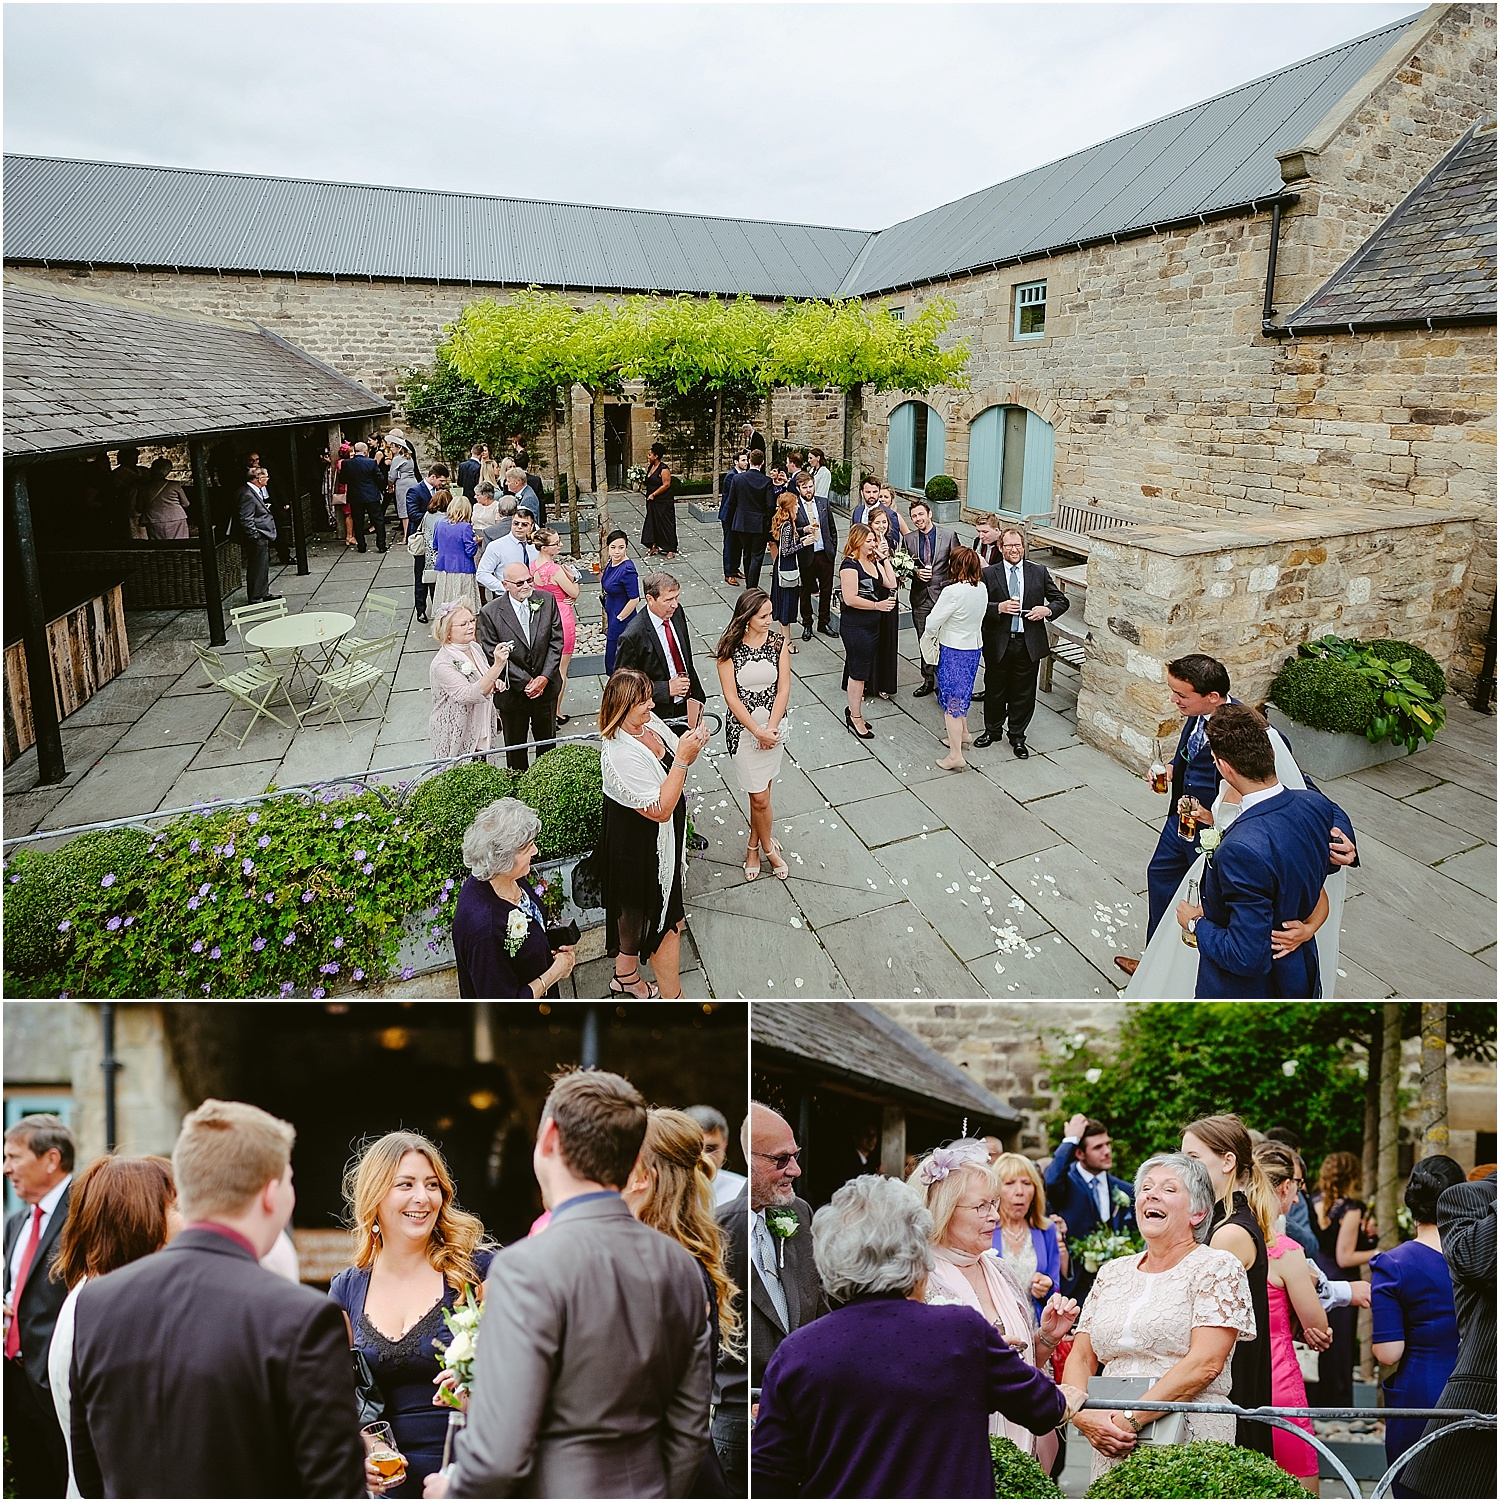 Healey Barn summer wedding photography by www.2tonephotography.co.uk 075.jpg